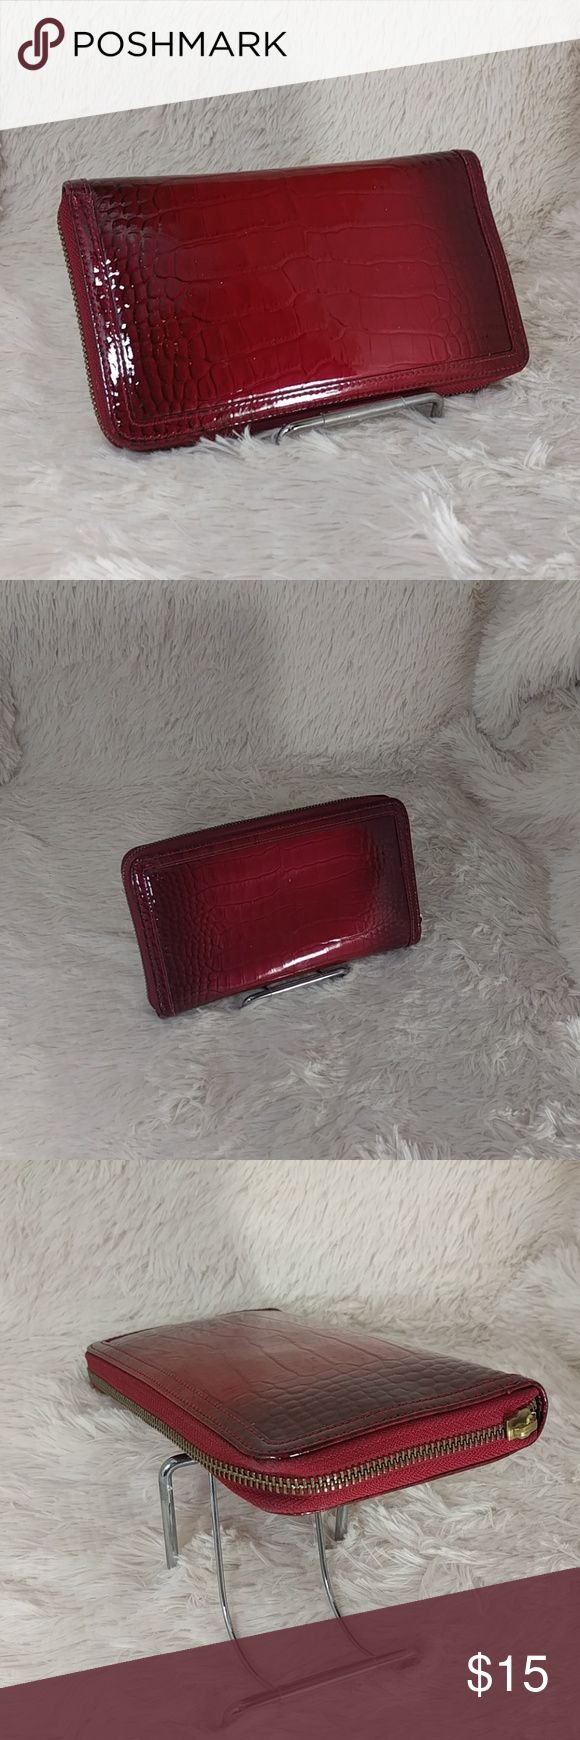 Halogen Faux Croc Check Wallet Clutch Deep red zippered wallet big enough for checkbook, cards, keys and the kitchen sink(well maybe not that).  Item is pre-owned and zipper pull is missing.  I can sell this as is for $15 or I can have the zipper pull repaired for $10 extra (would take a few days).  Happy poshing let me know if you have any questions!!!  Dimensions: 8 L x 4.5 W x 1 d. Halogen Bags Wallets